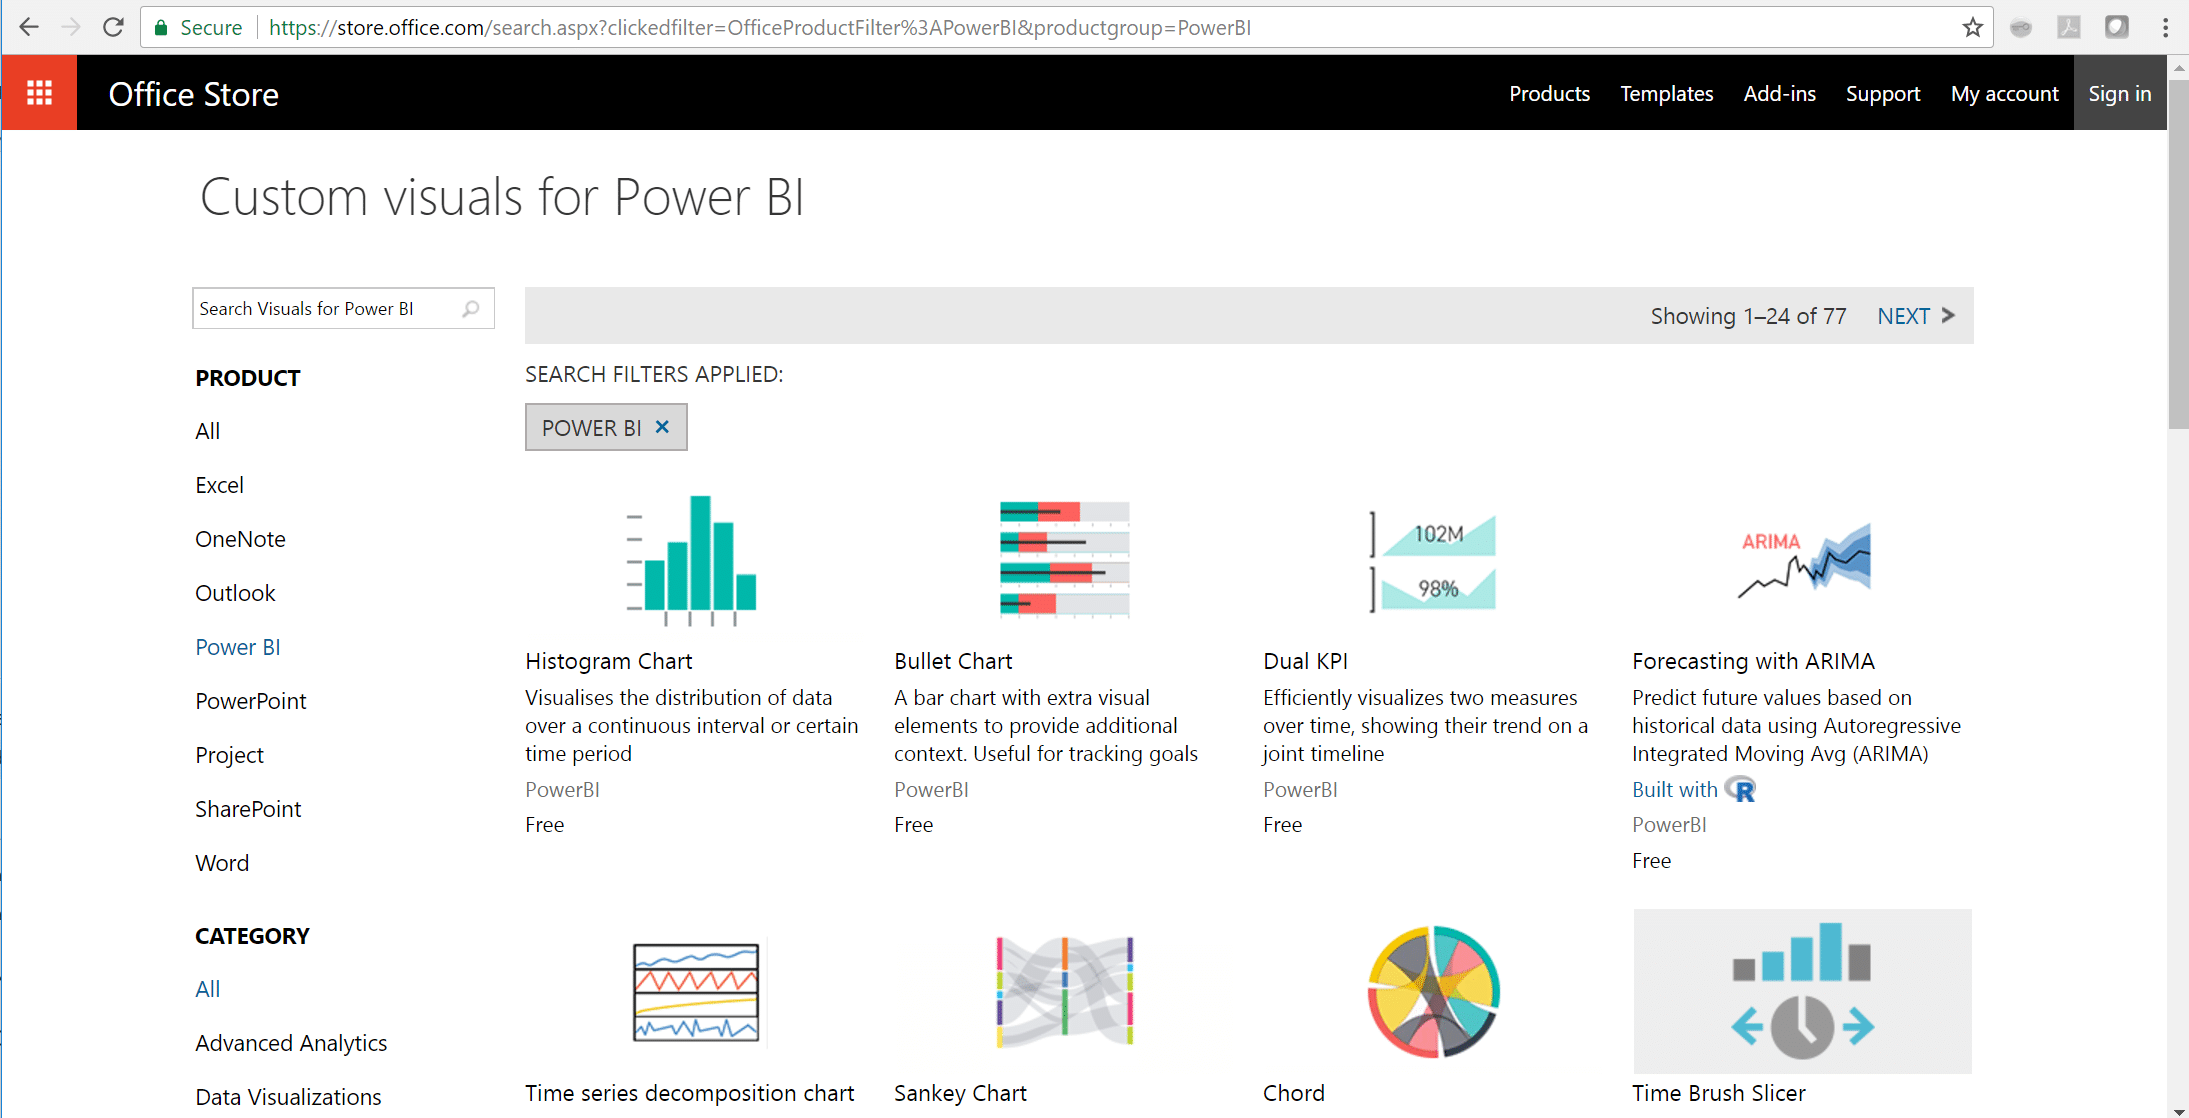 Office Store Power BI Custom Visuals